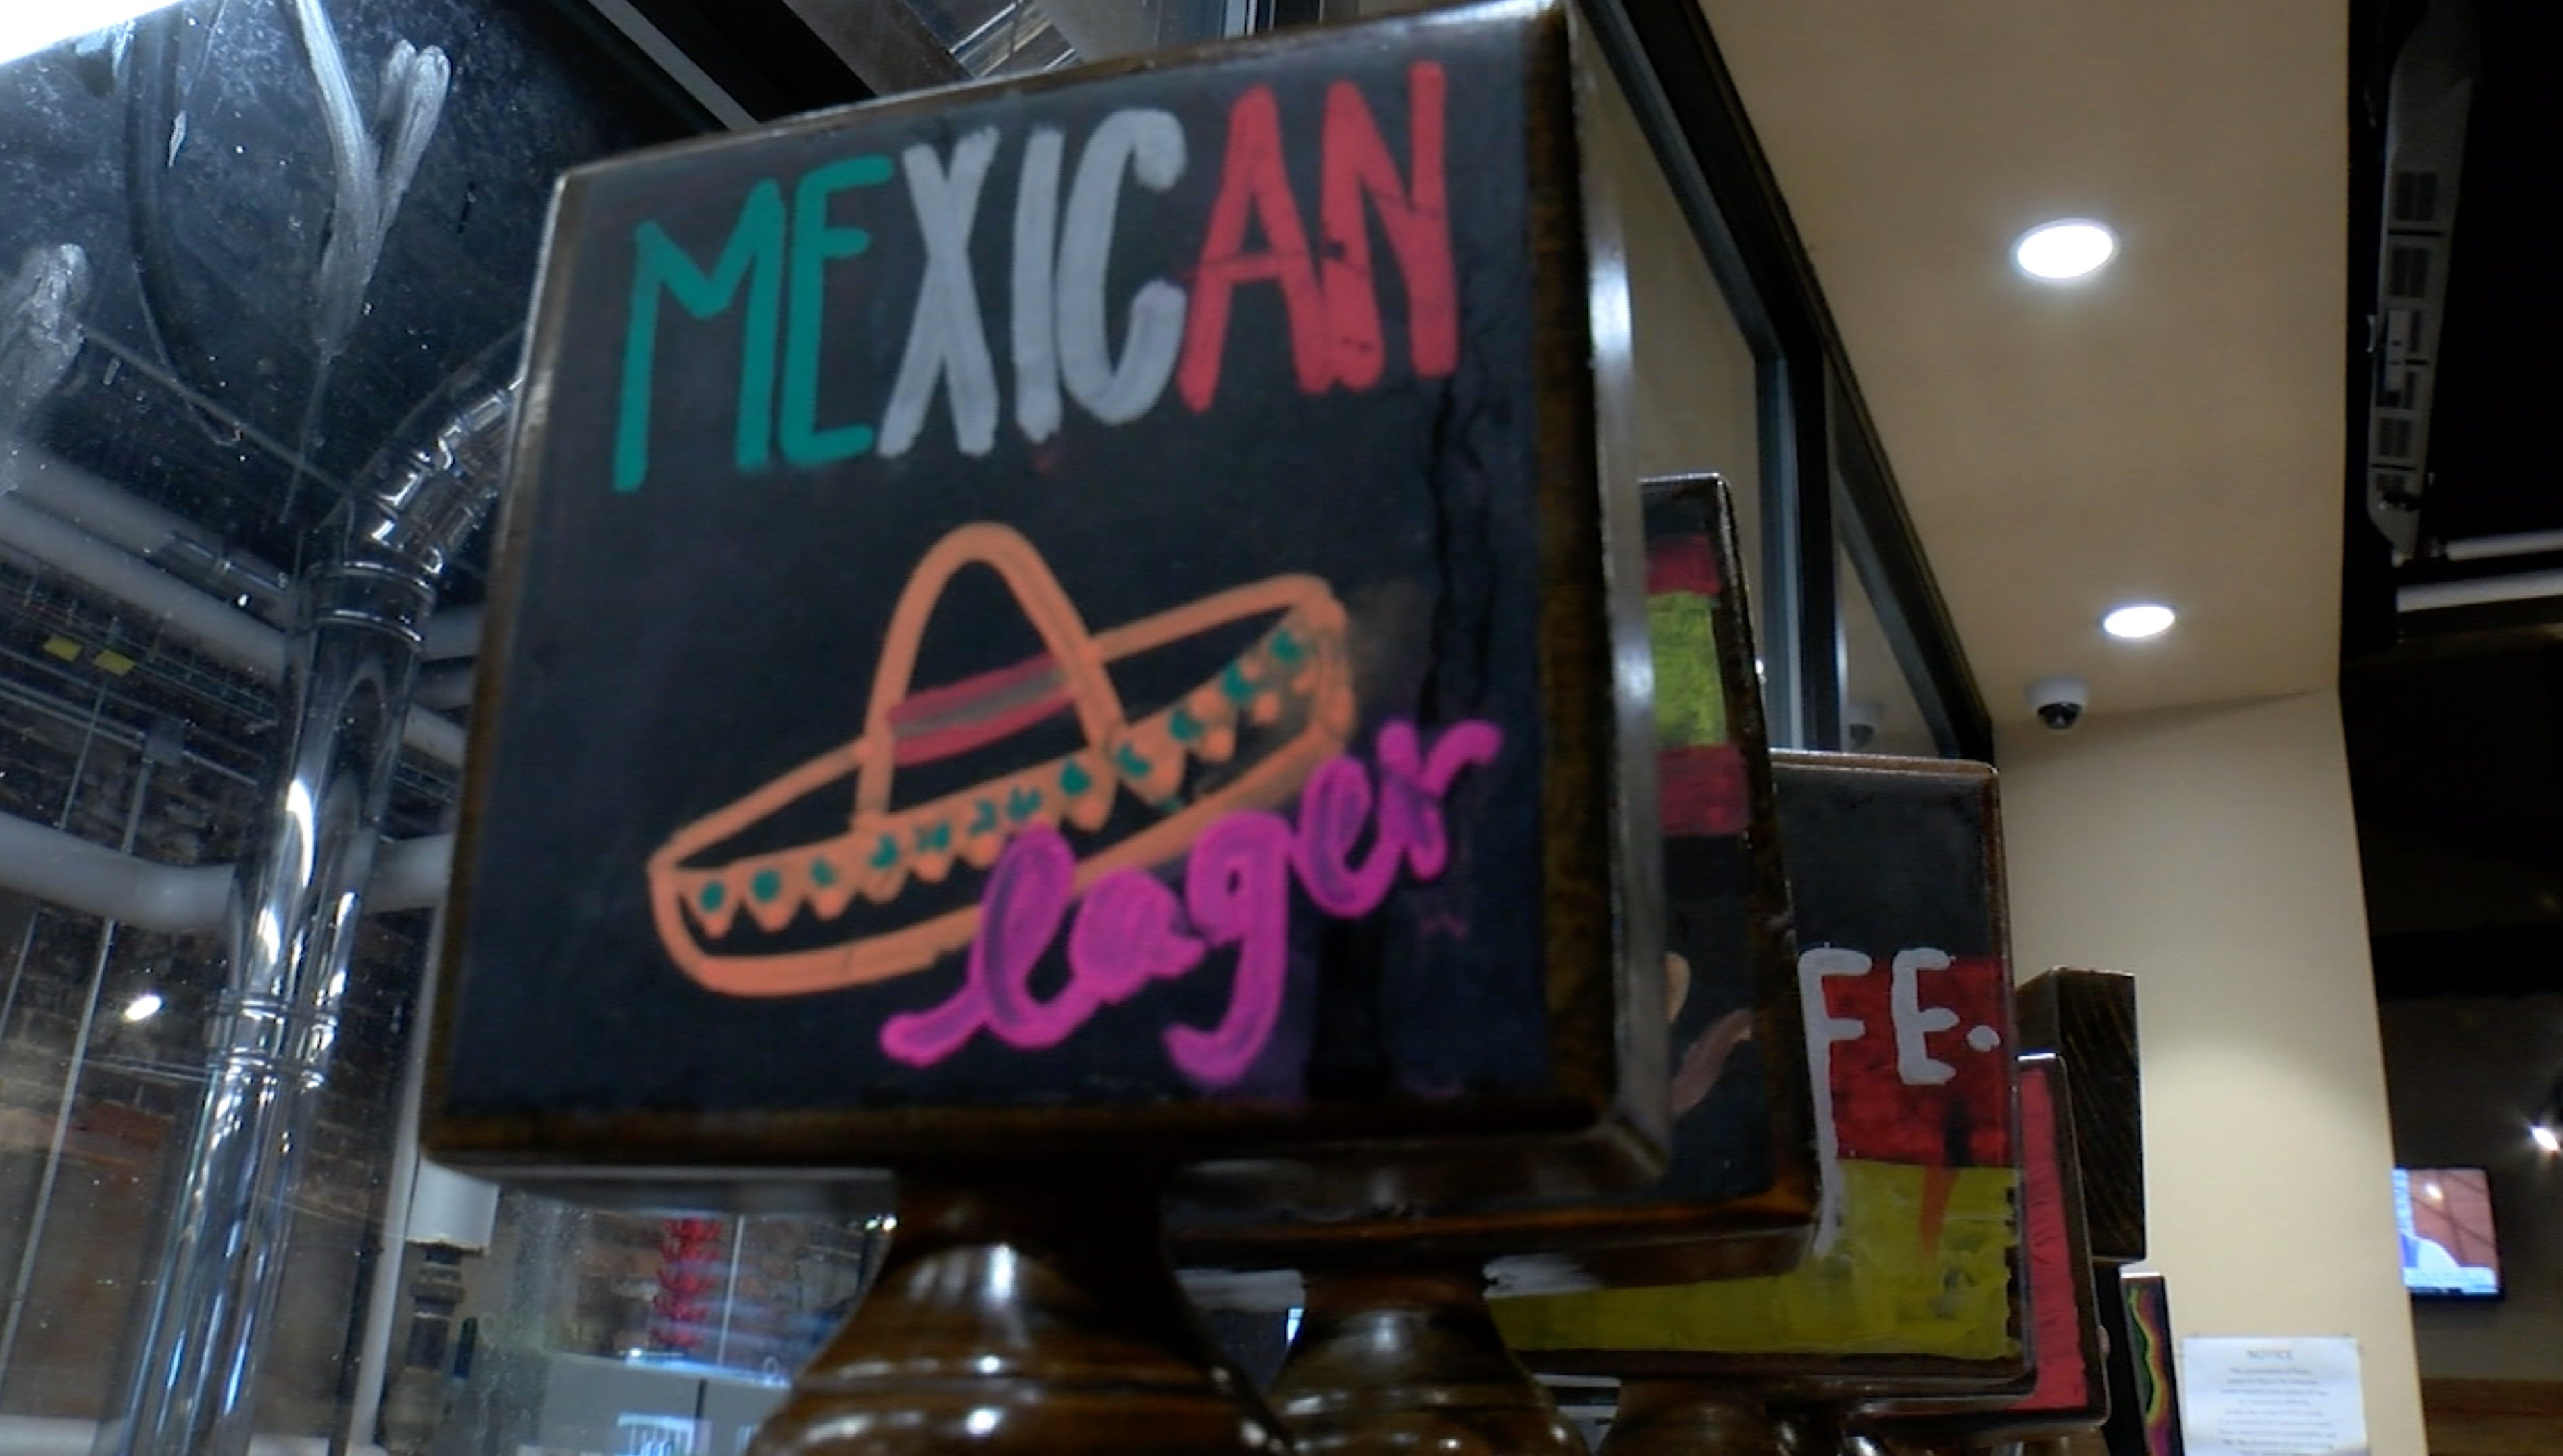 Mexican lager is a popular choice at Twisted Spur Brewery.